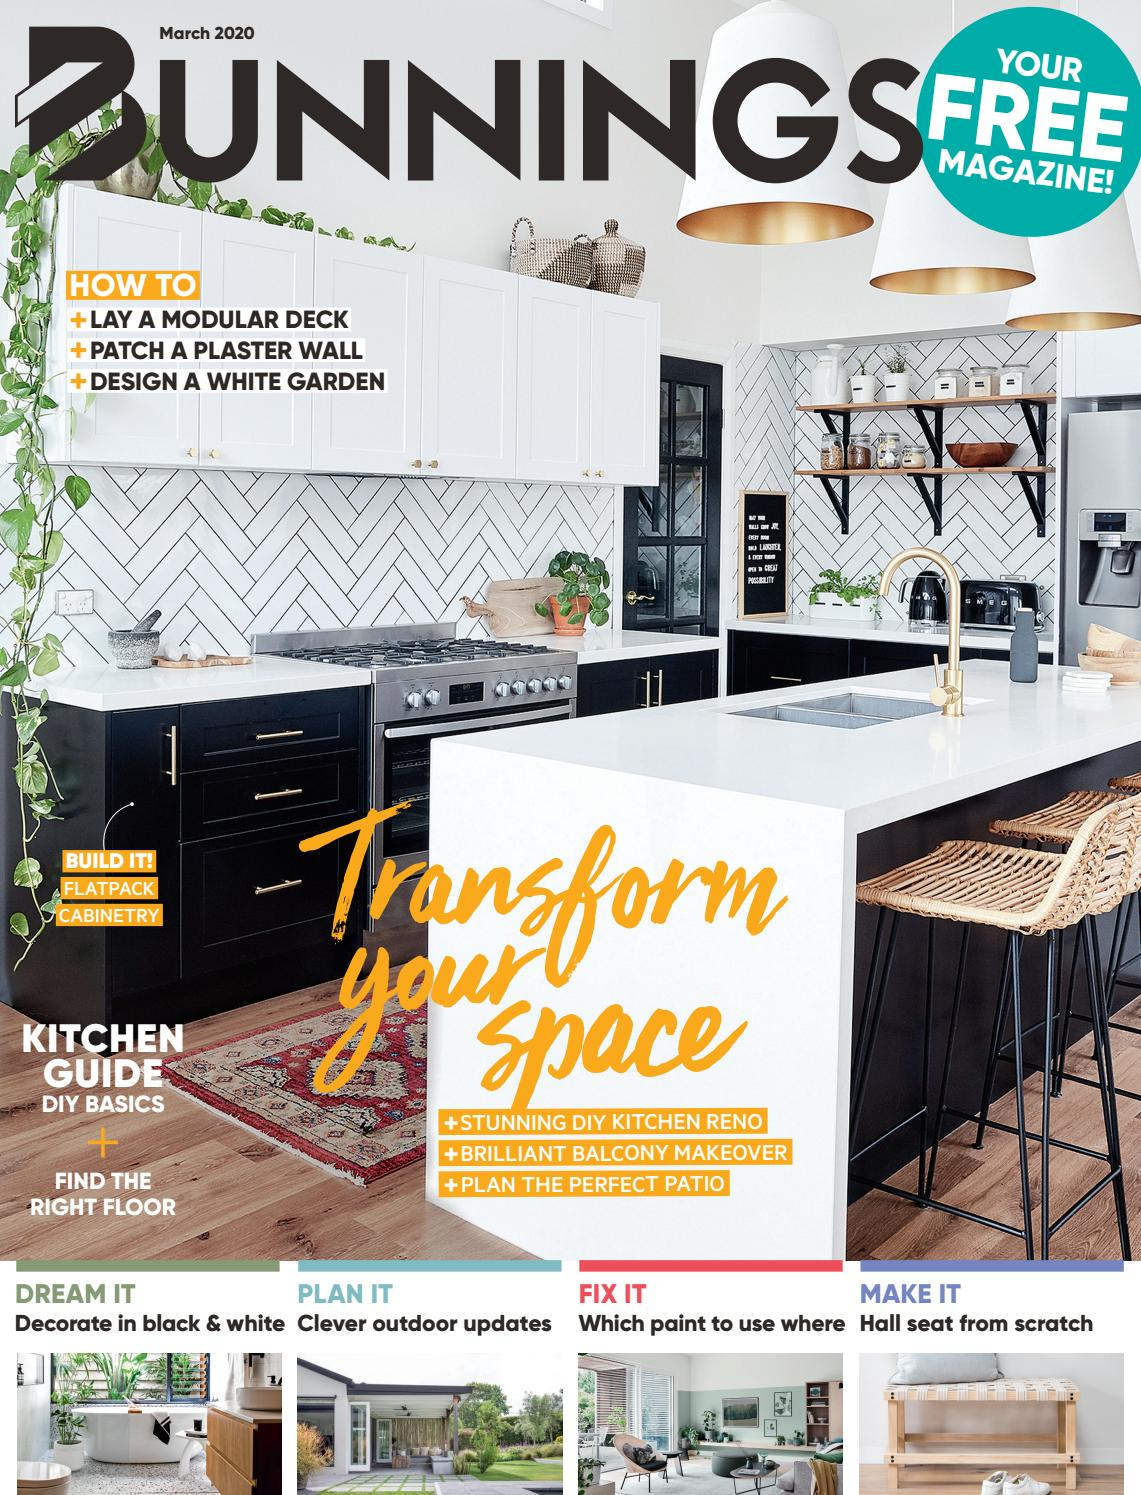 Bunnings Magazine March 2020 By Bunnings Issuu